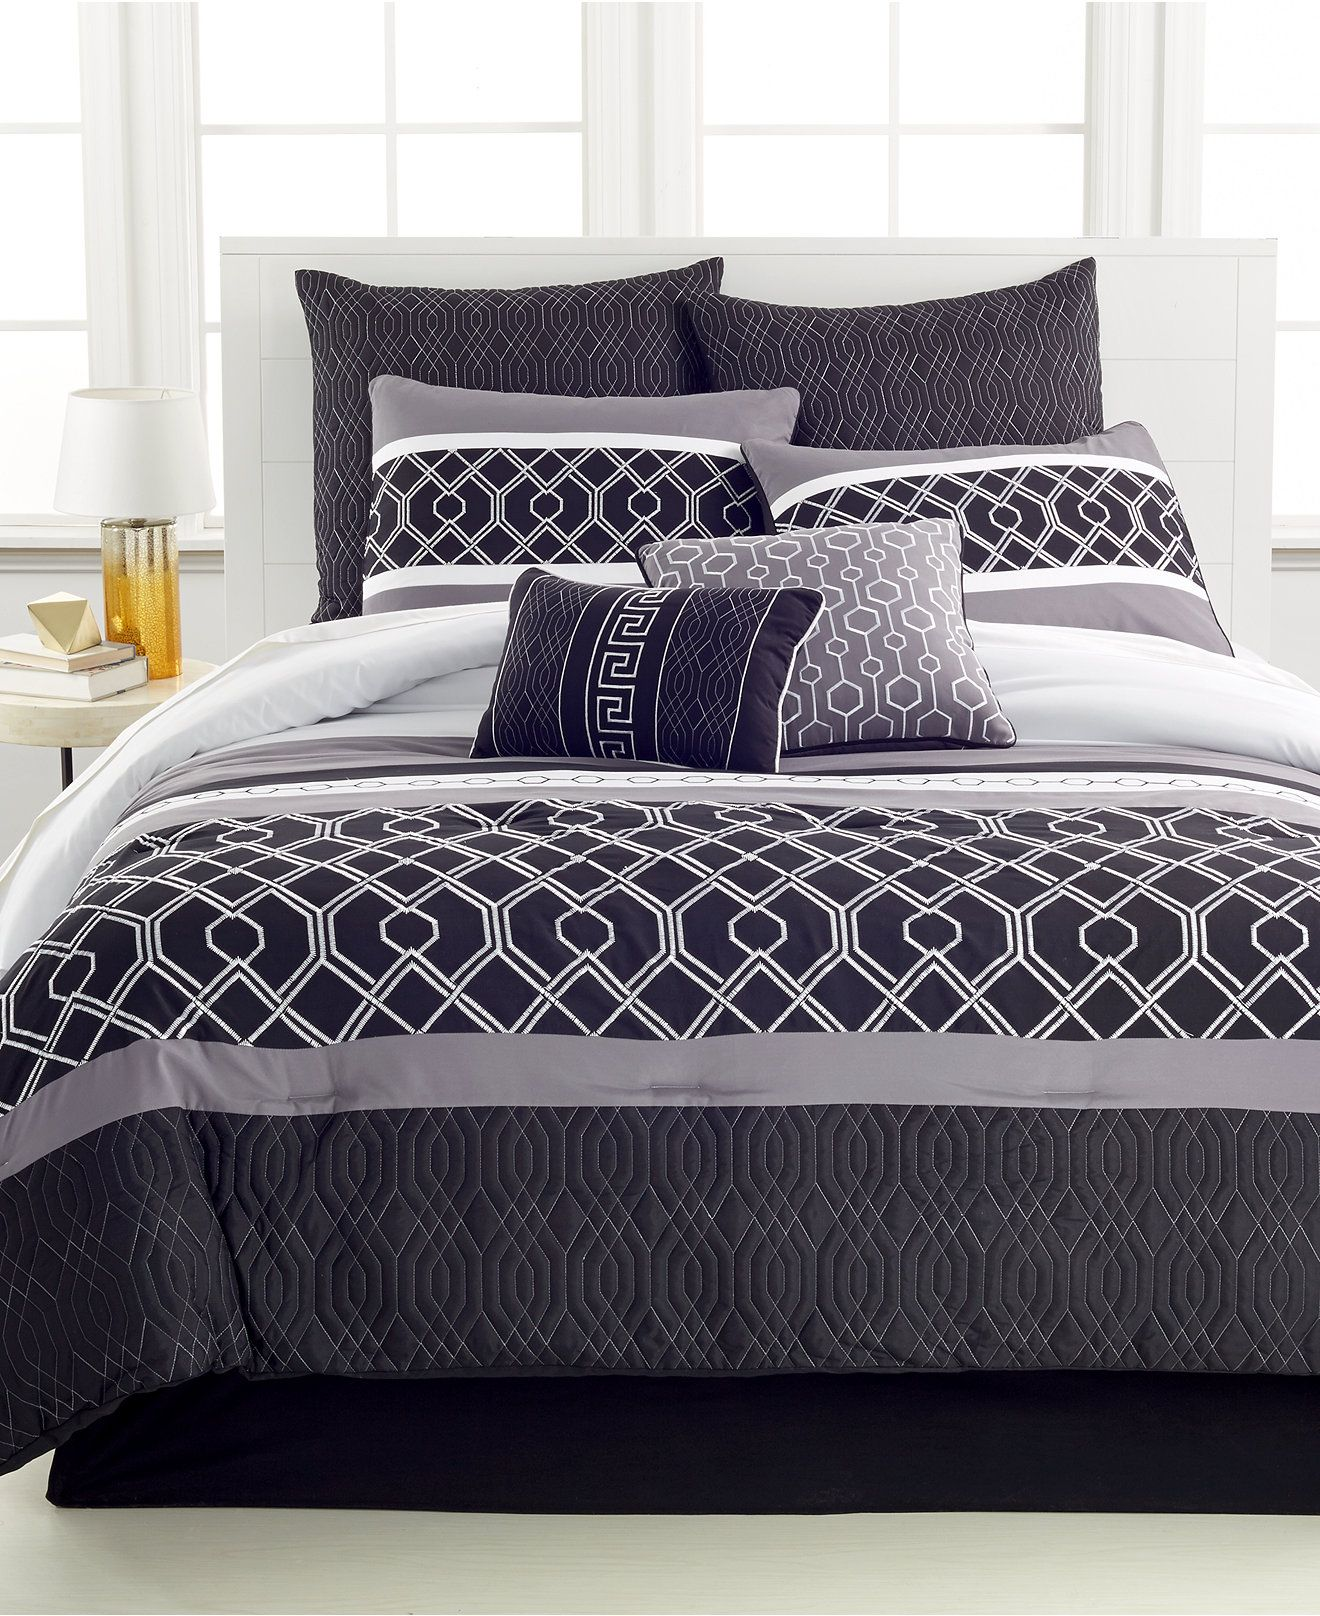 Tribeca 8-Pc. Comforter Sets